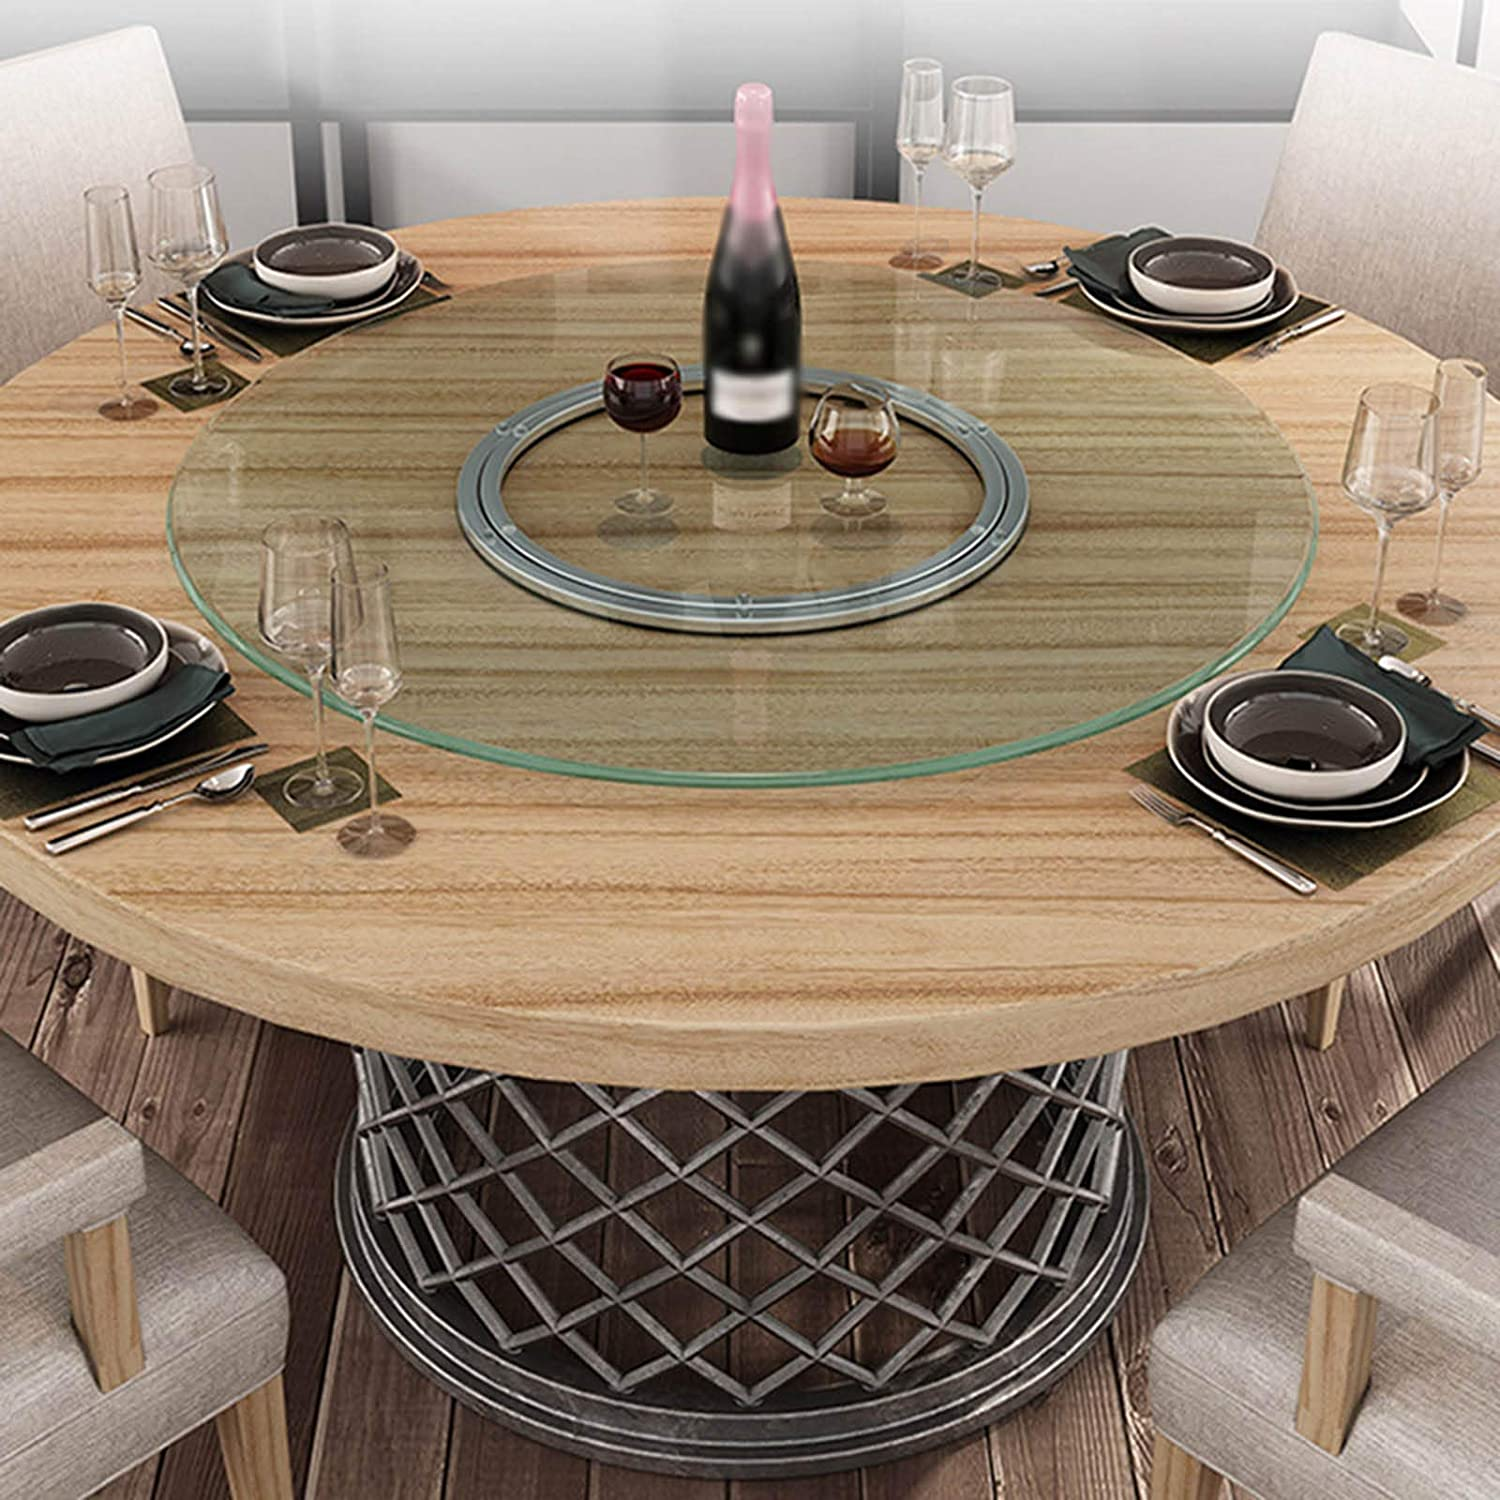 Glass Table Top Tempered Glass Lazy Susan Kitchen Turntable 0 3inch With Flat Polished Edge For Dining Table Coffee Table Amazon Co Uk Kitchen Home